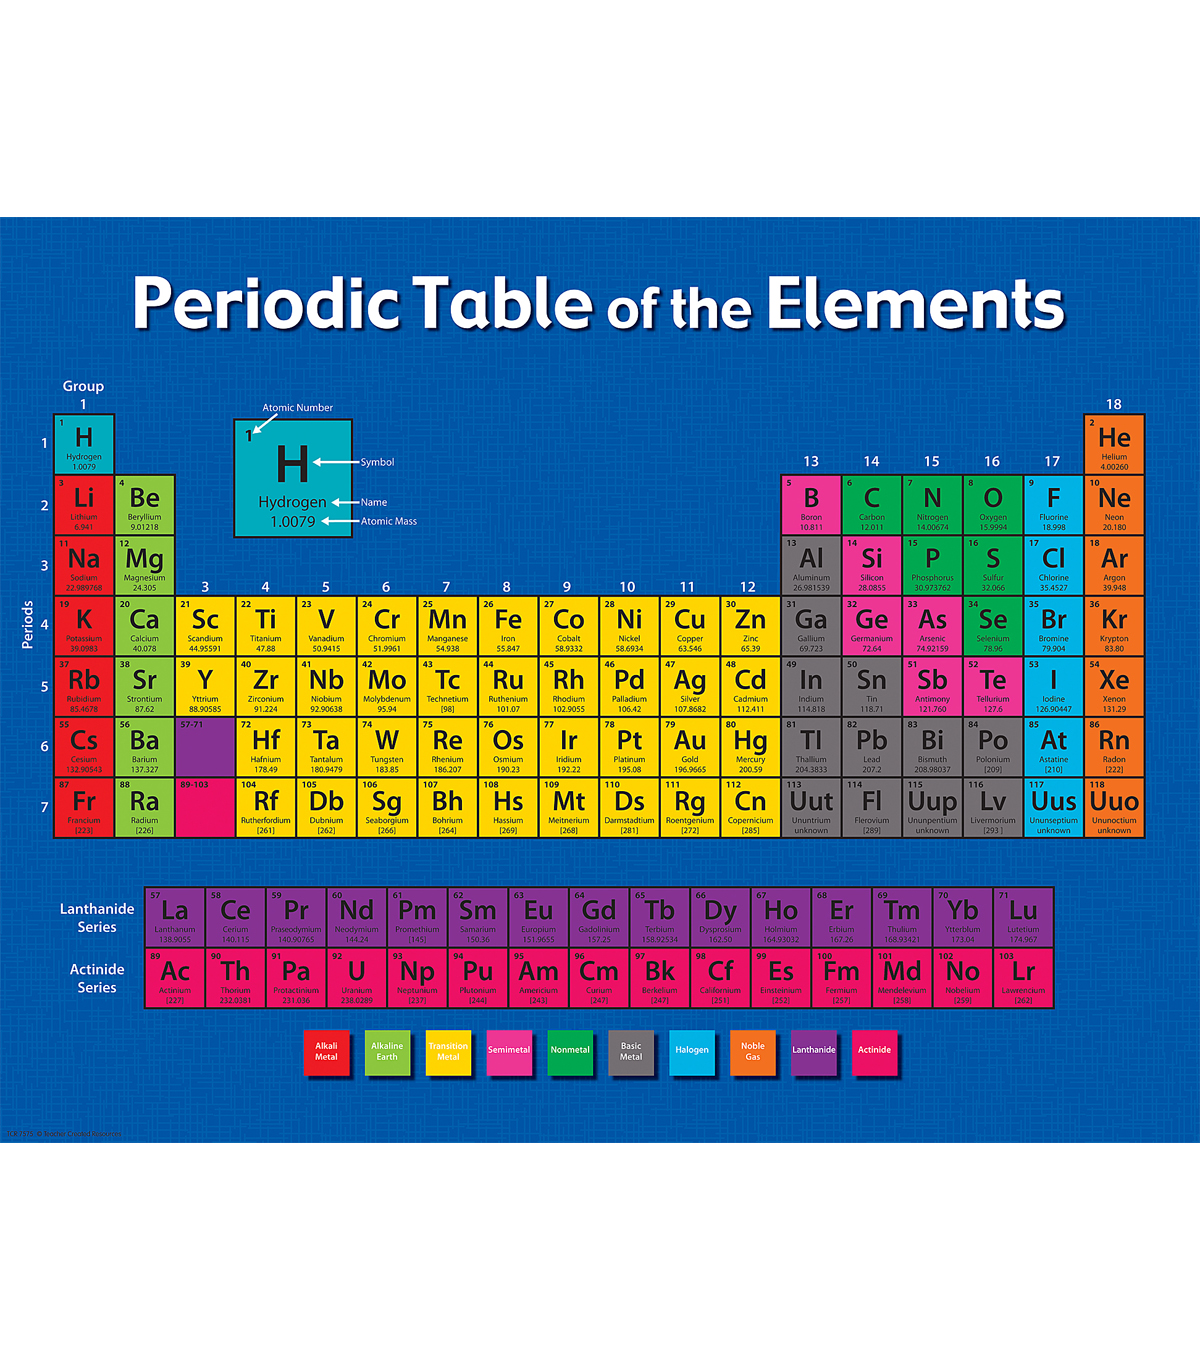 Periodic table of elements chart joann periodic table of elements chart gamestrikefo Images